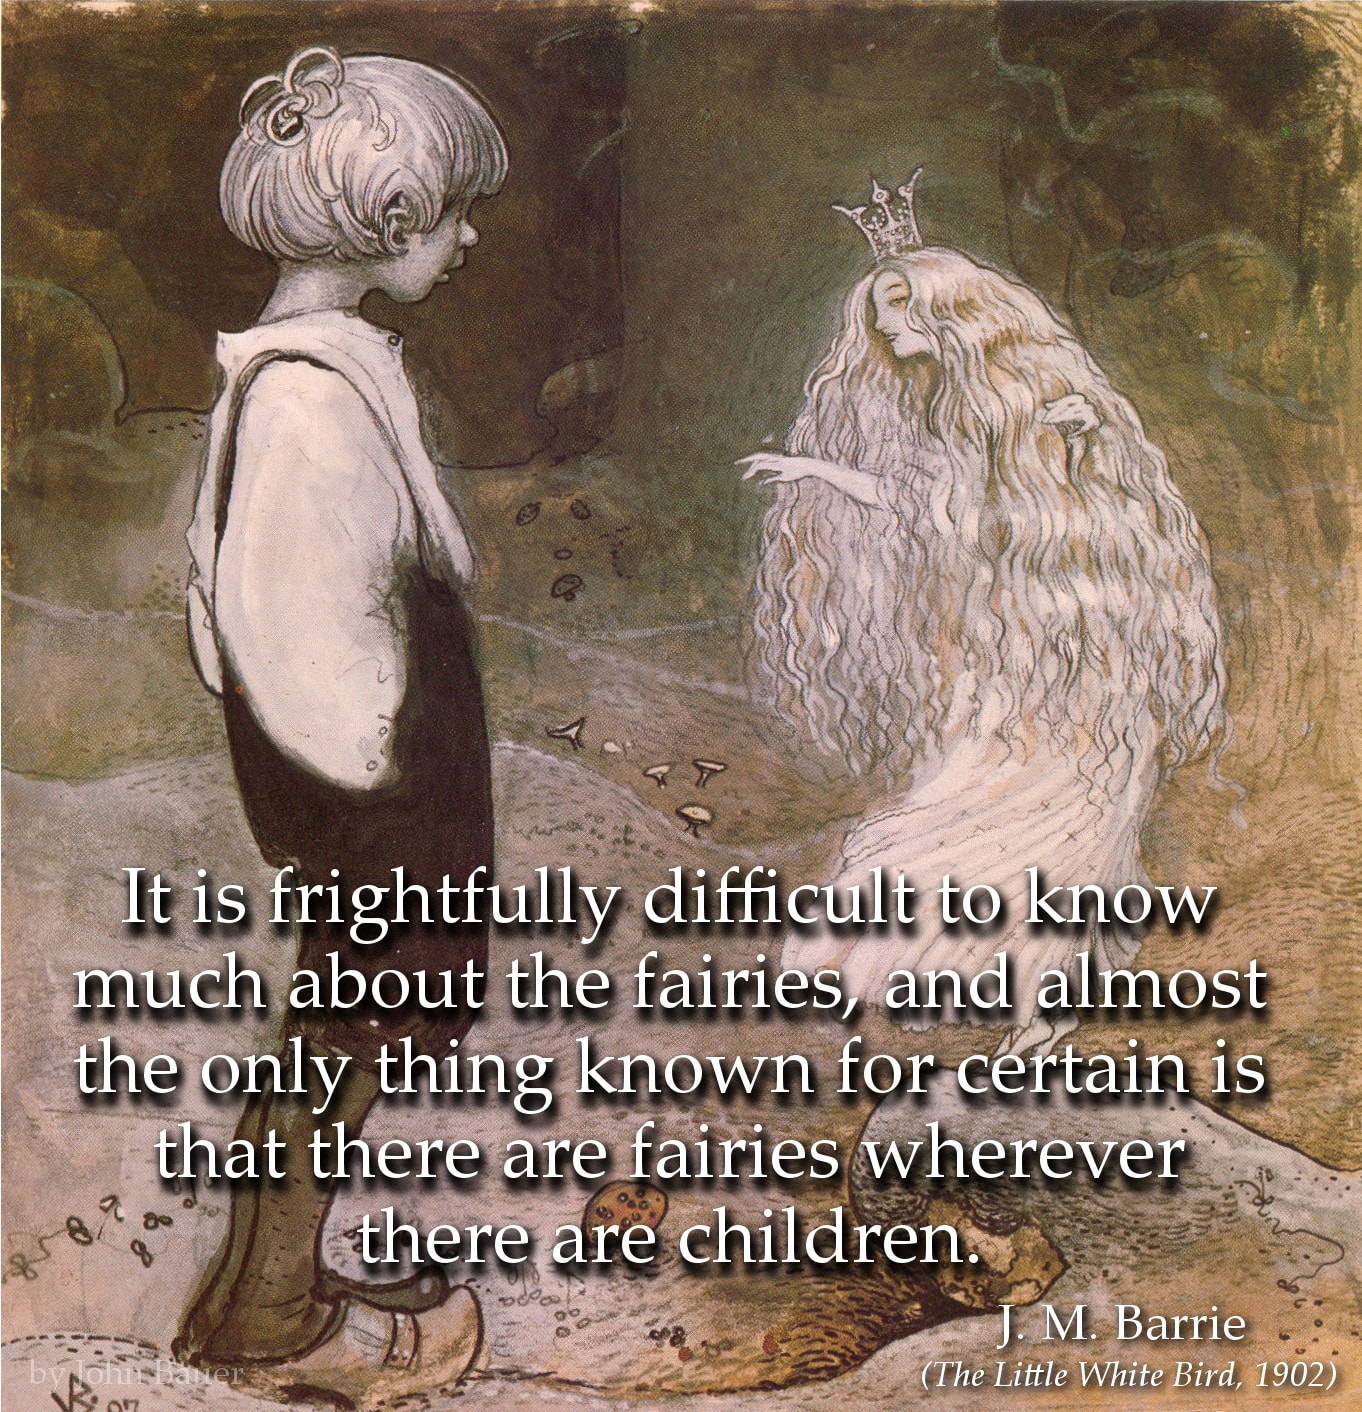 James Matthews Barrie Quote: It is frightfully difficult to know much about the fairies, and almost the only...